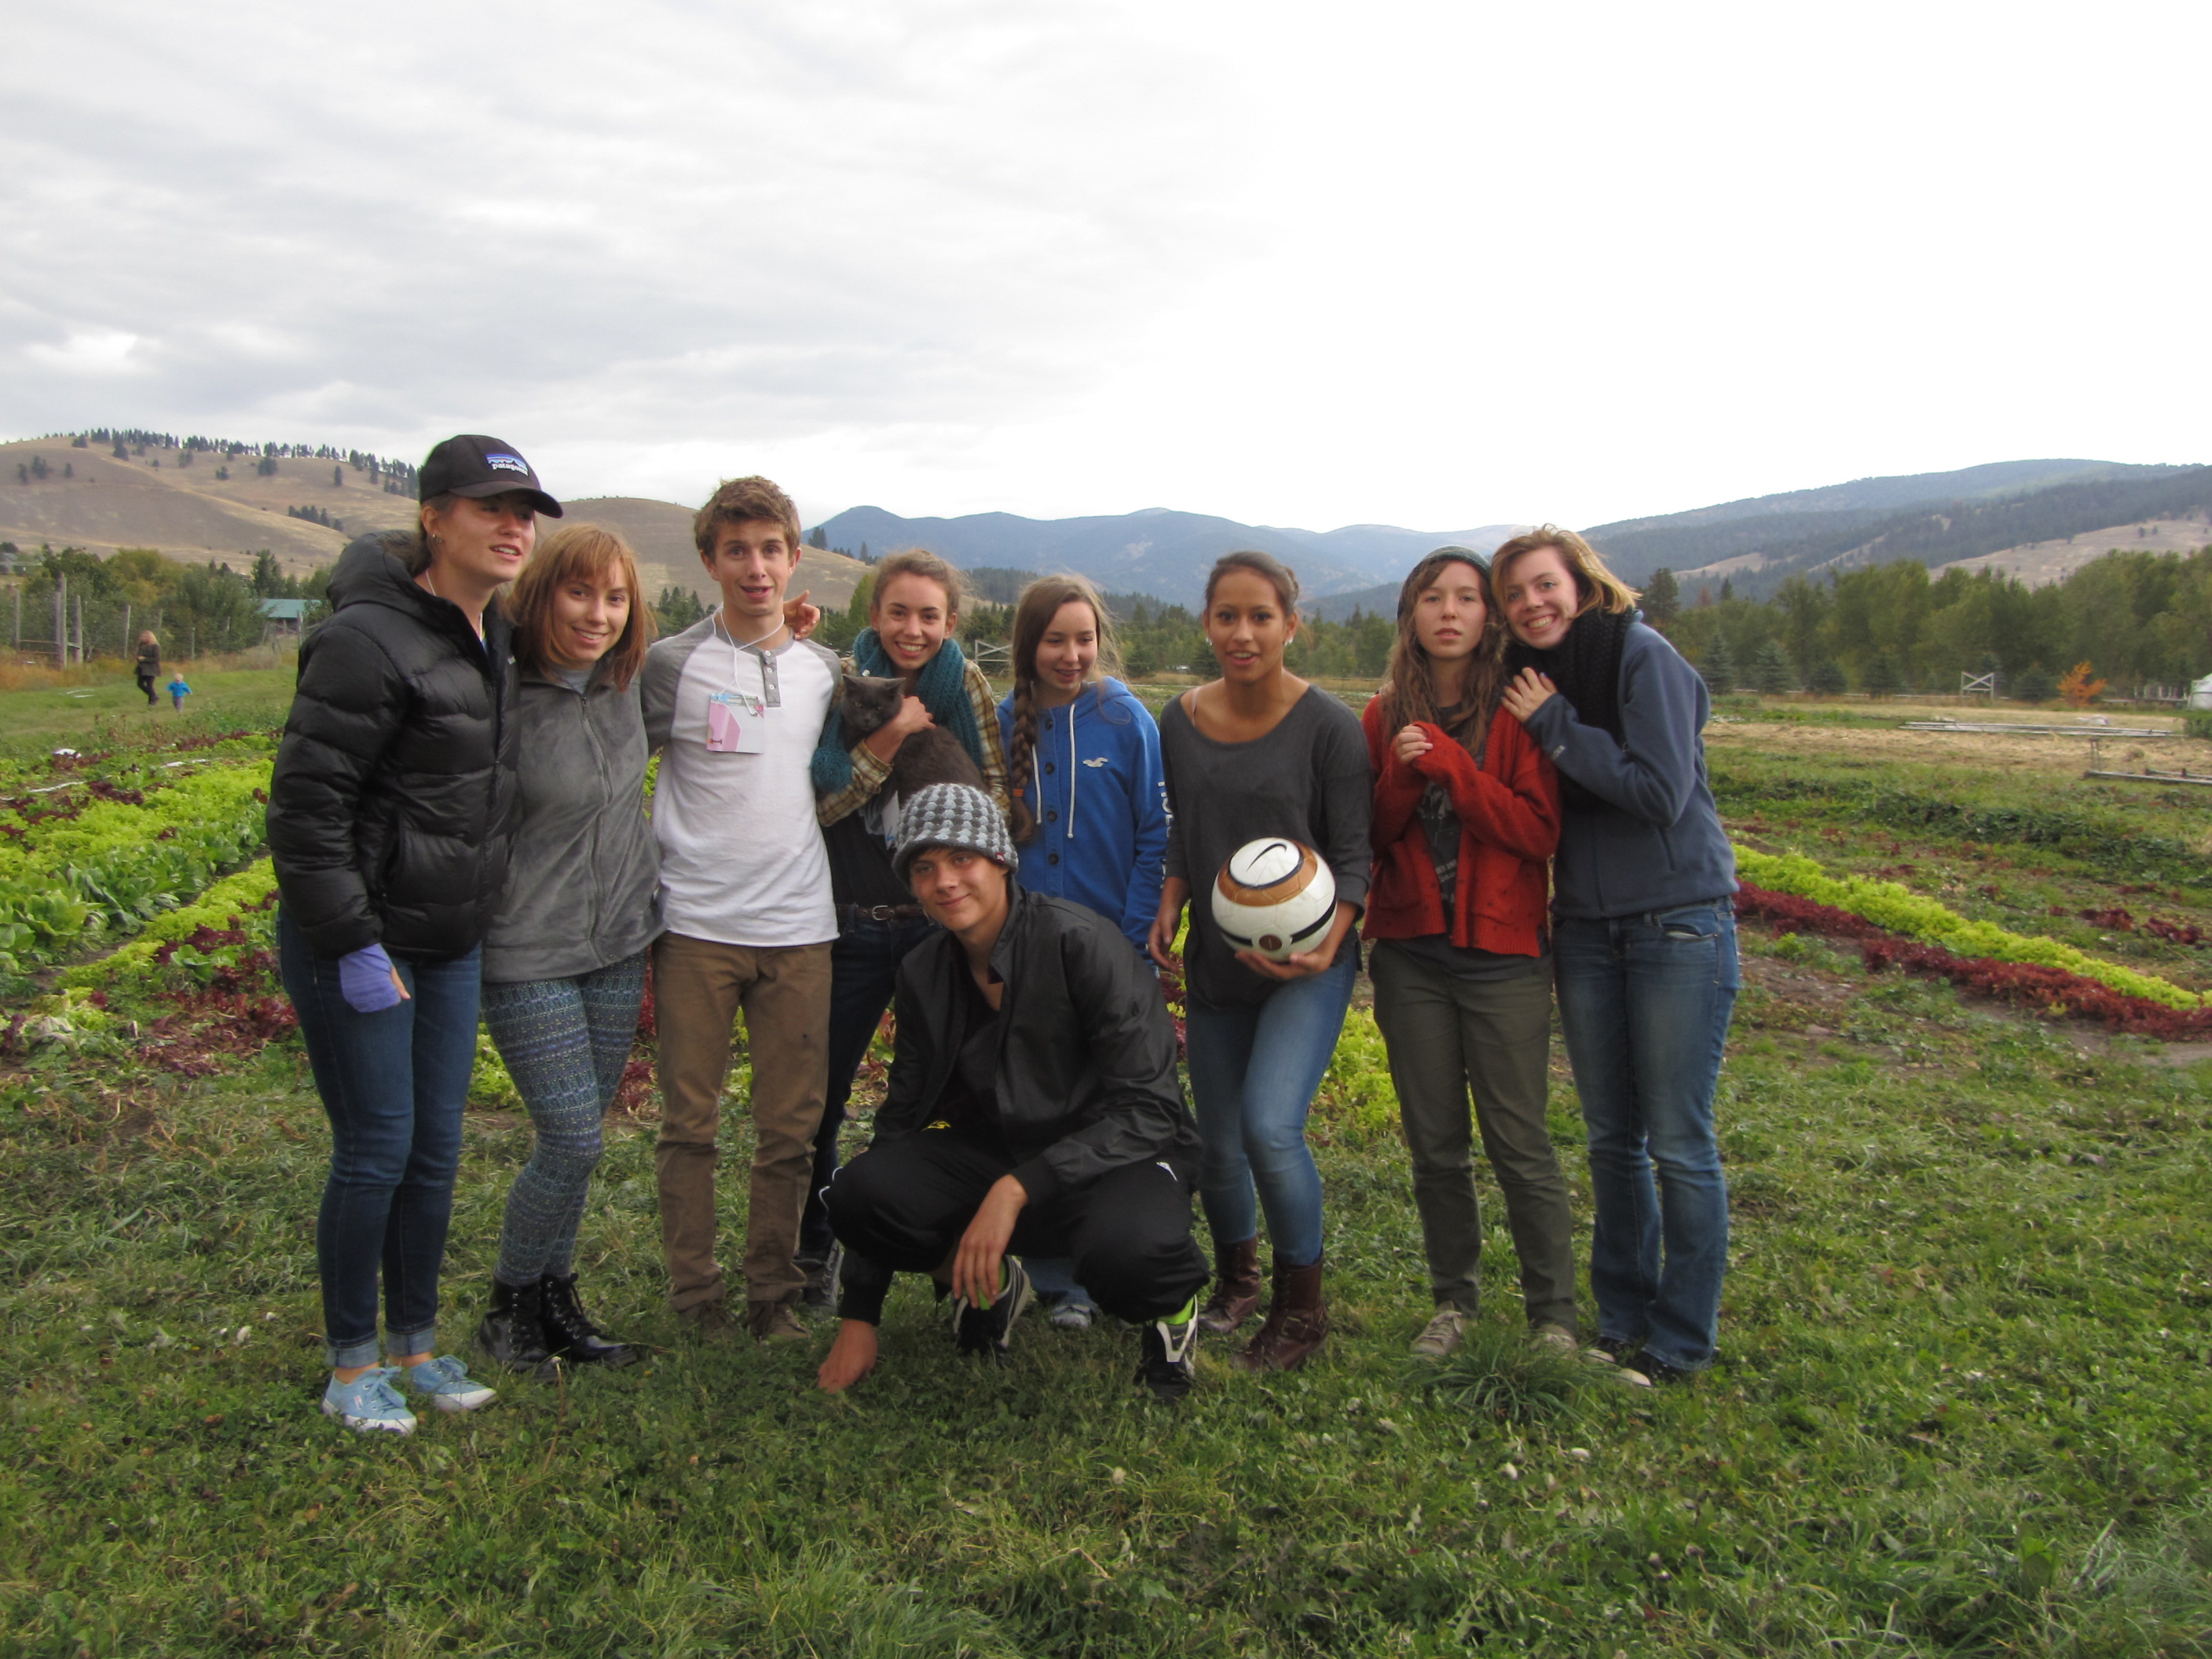 Whitefish High School students at the 2013 Growing Leaders Youth Summit PEAS Farm dinner